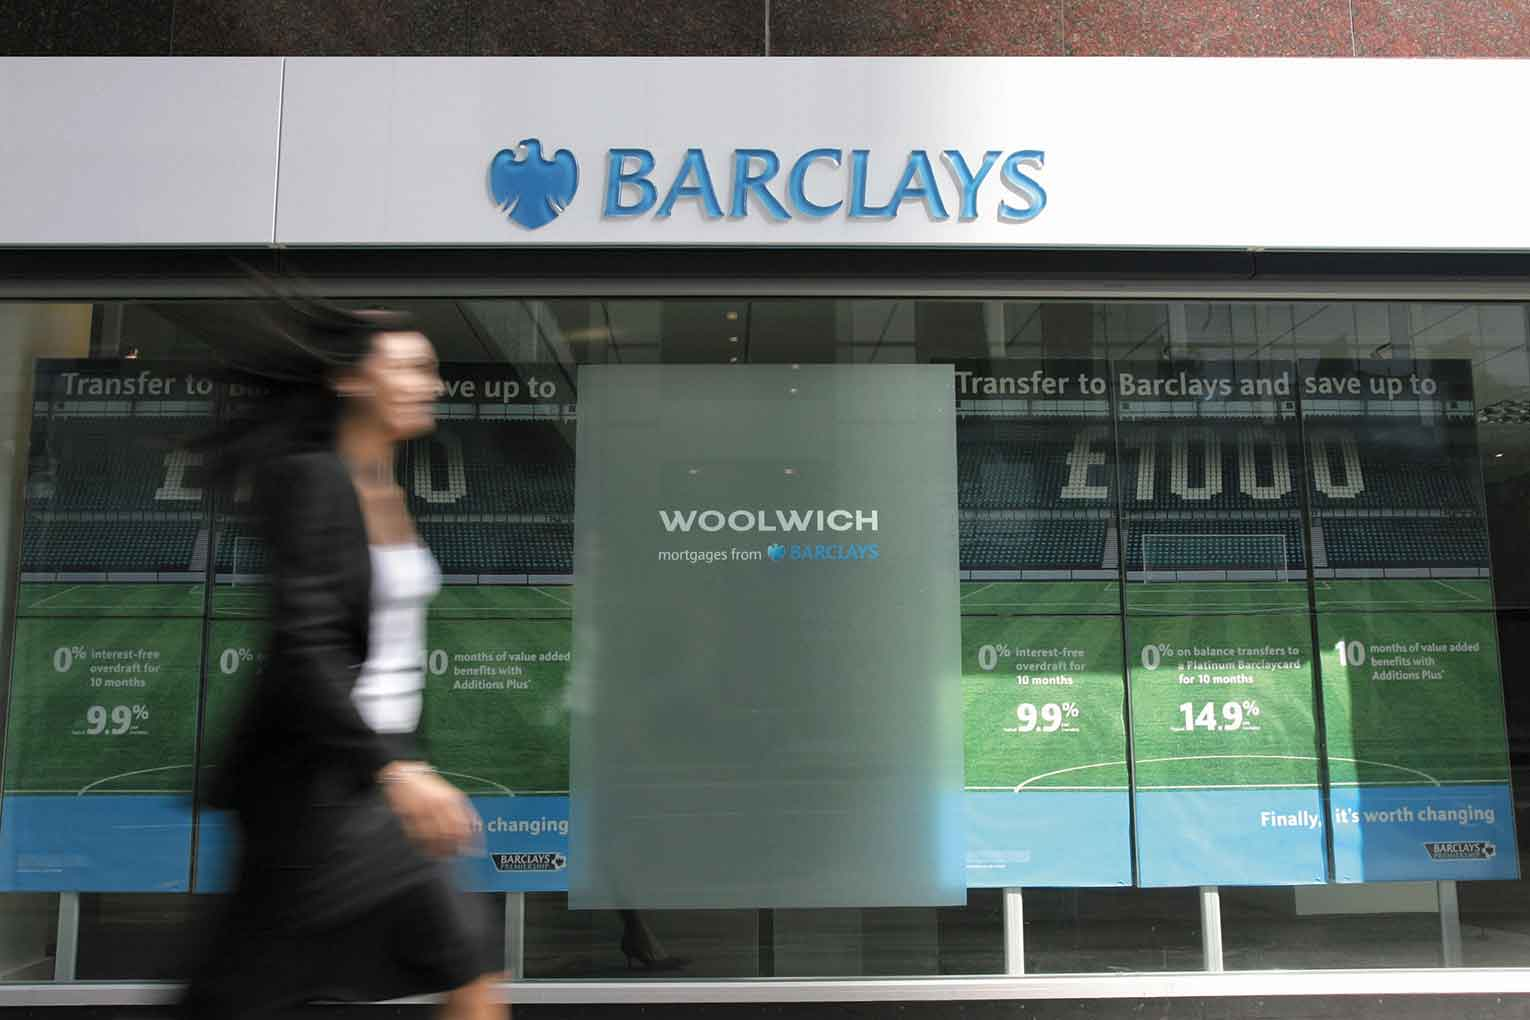 New Barclays mortgages for FTBs and home movers